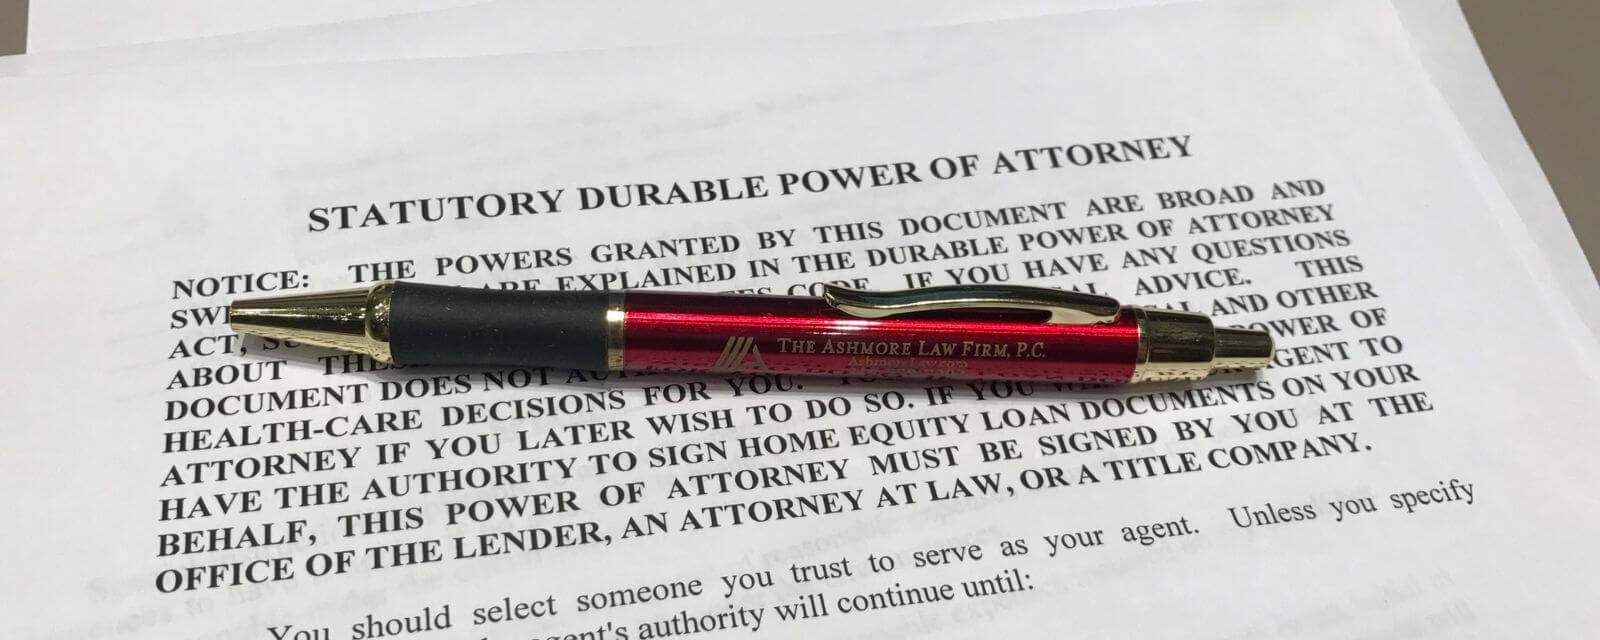 statutory-durable-power-of-attorney